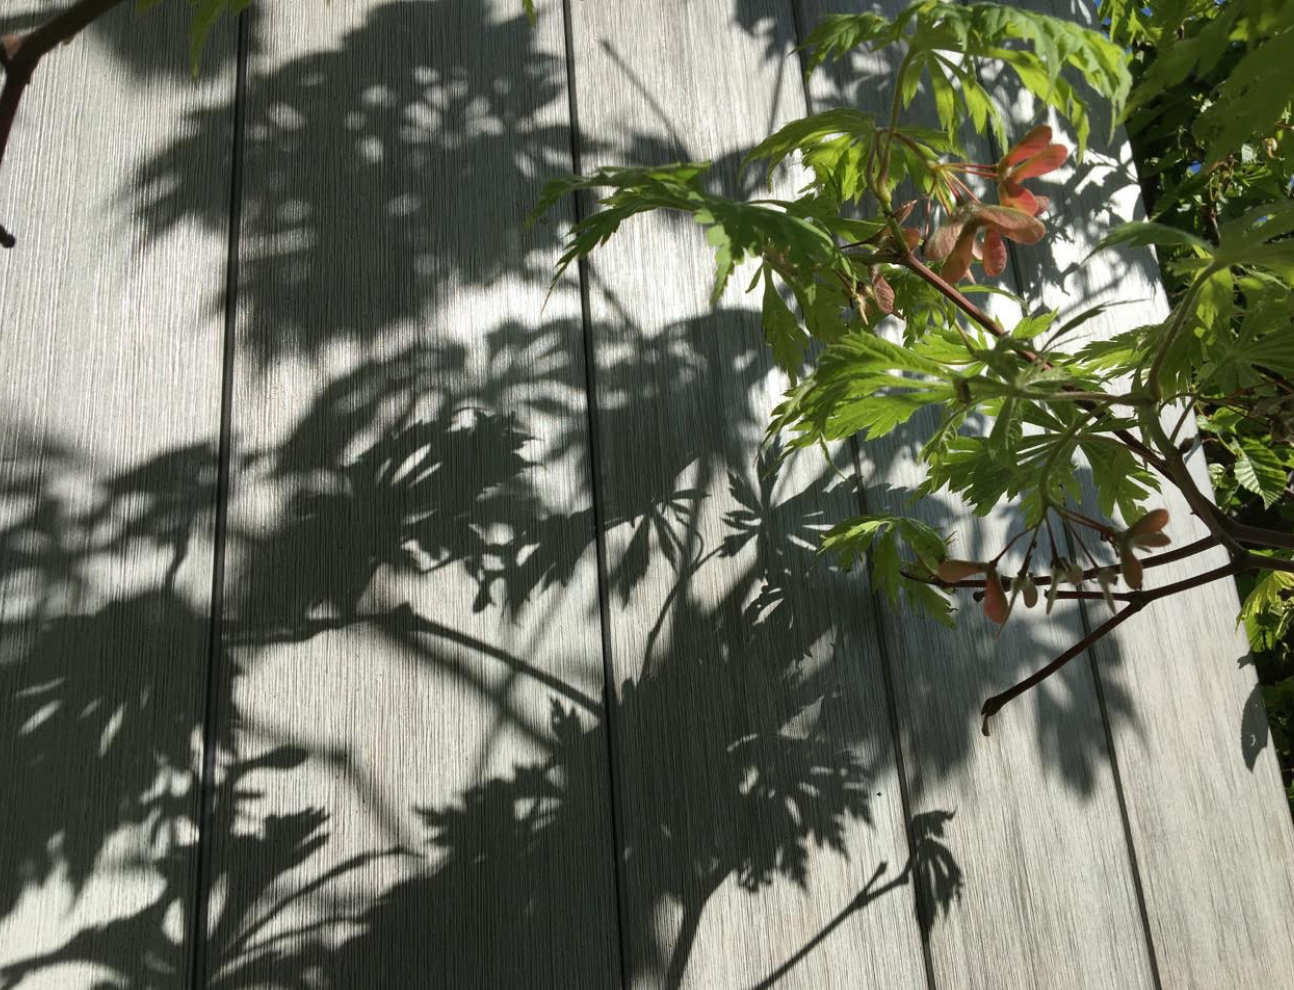 A plant from the garden casts shadows on wooden decking